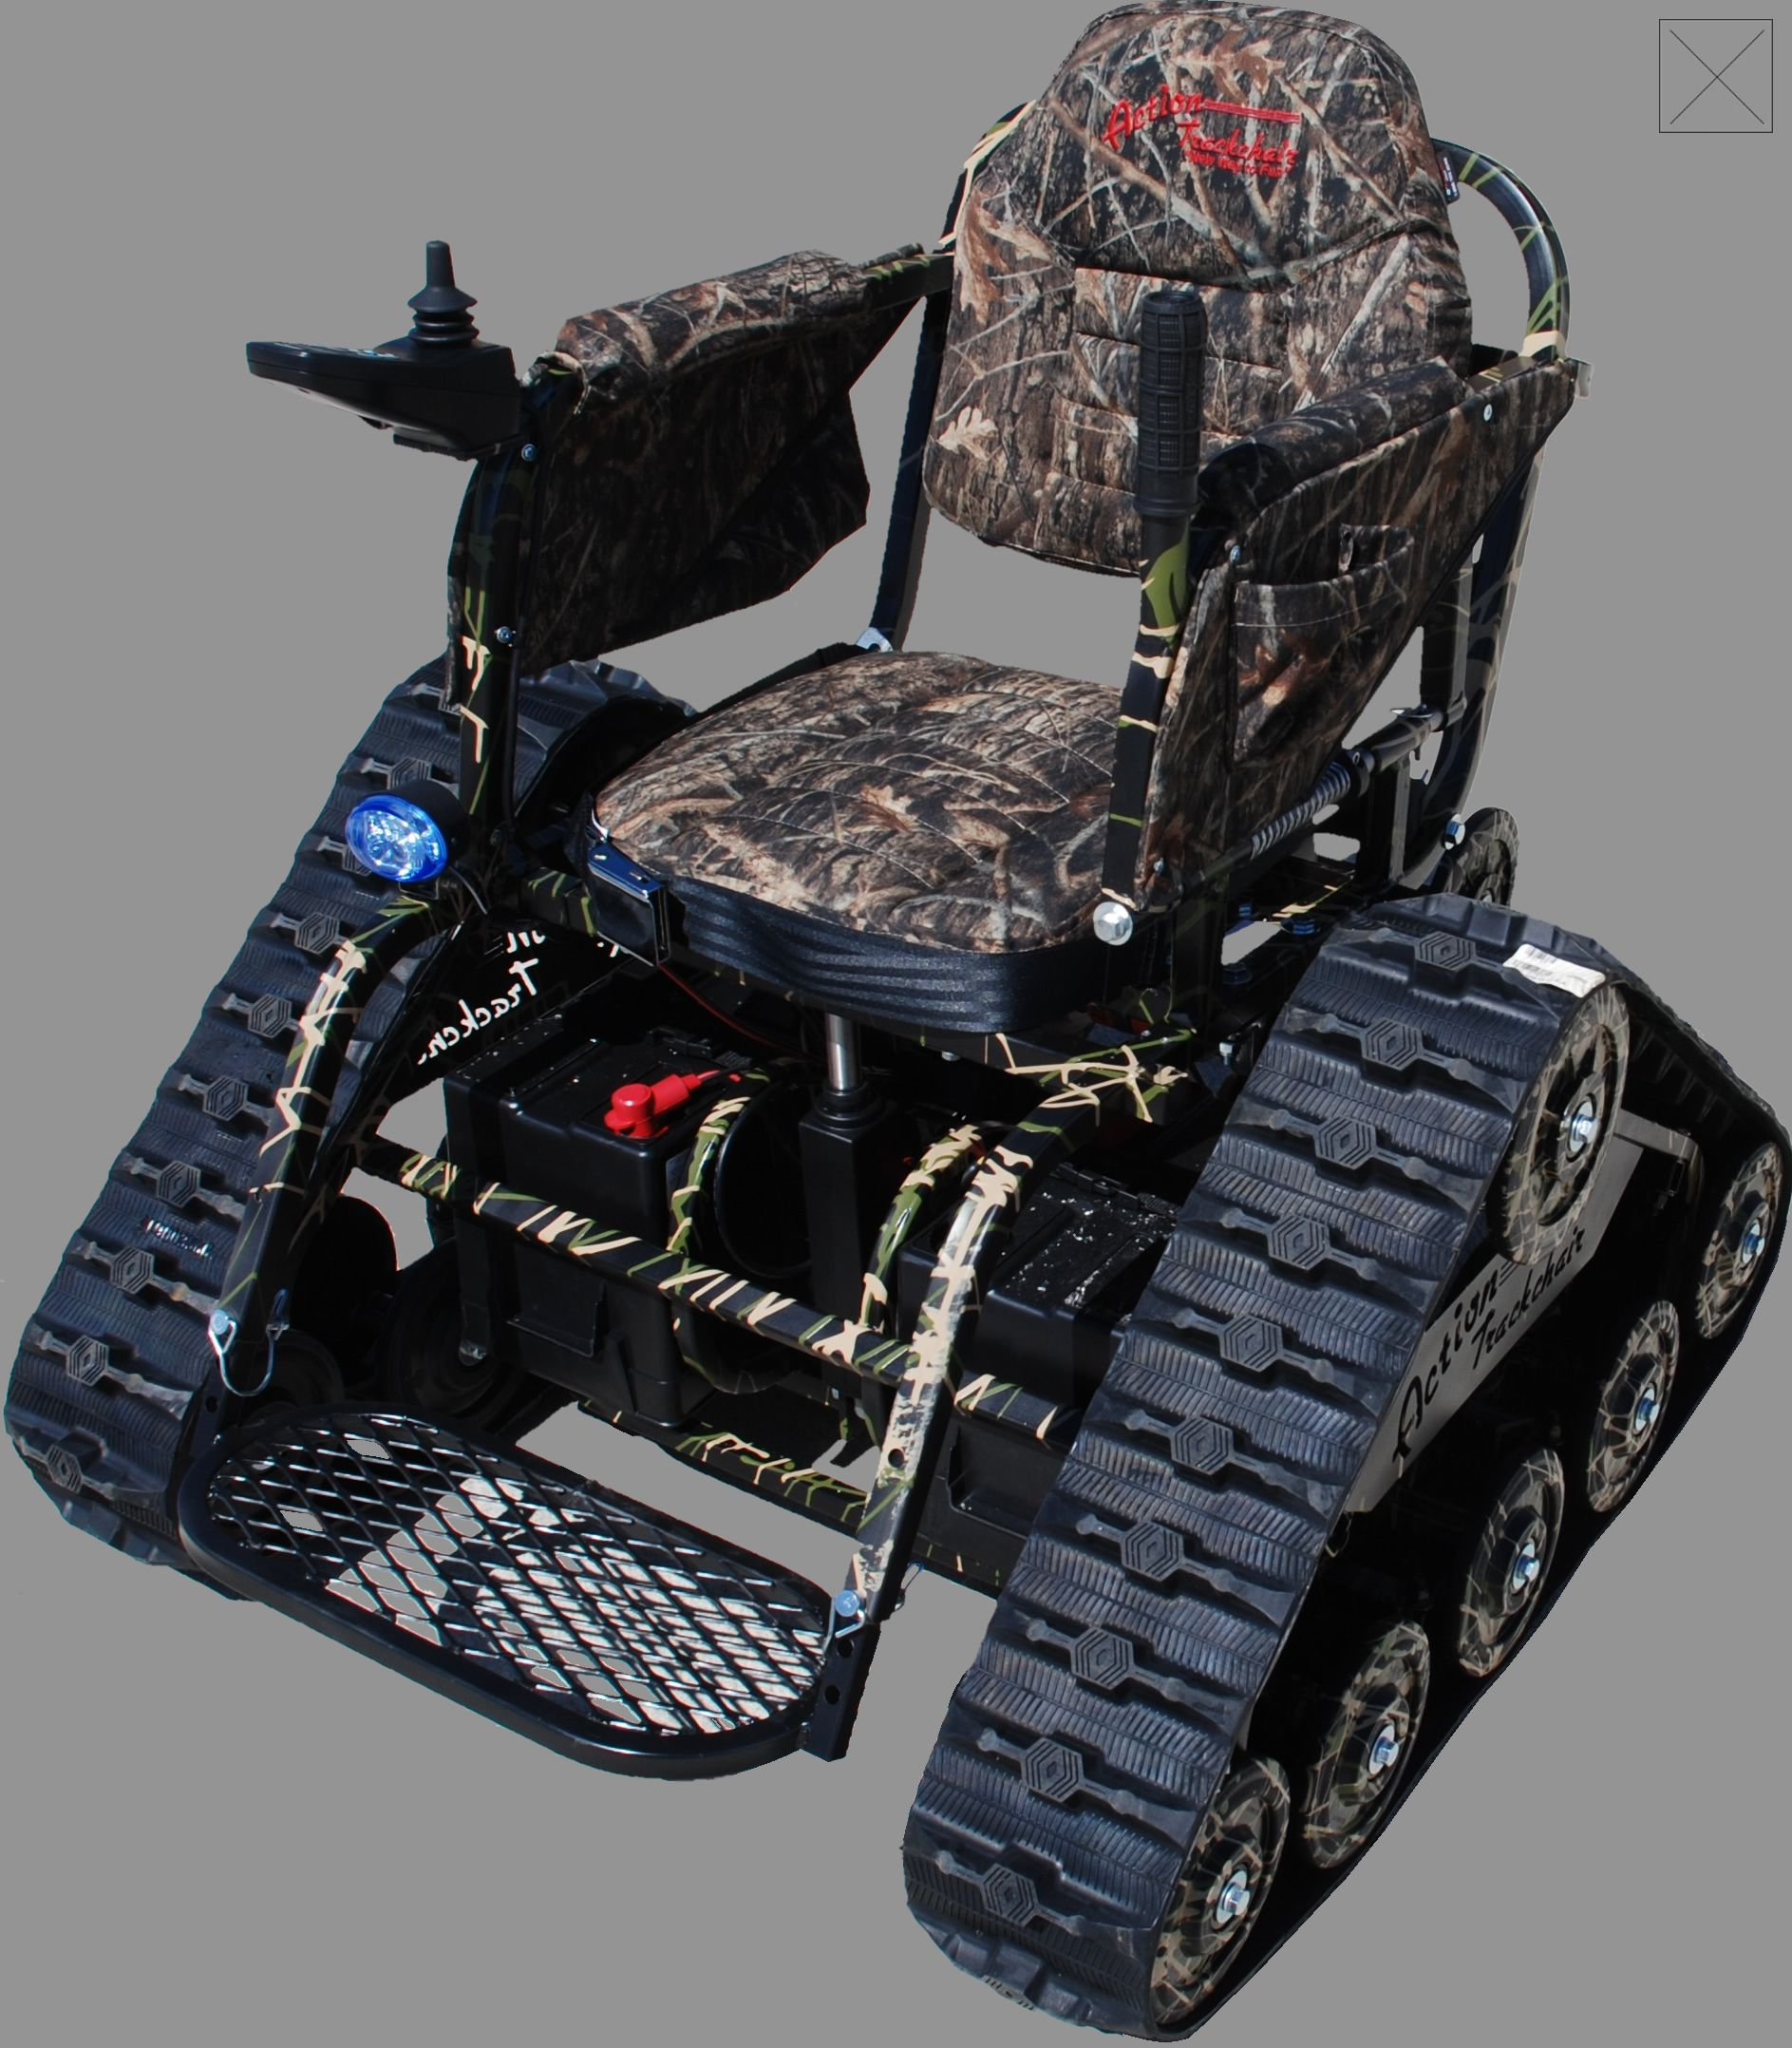 Astonishing Action Track Chair All Terrain Vehicle From Download Free Architecture Designs Scobabritishbridgeorg